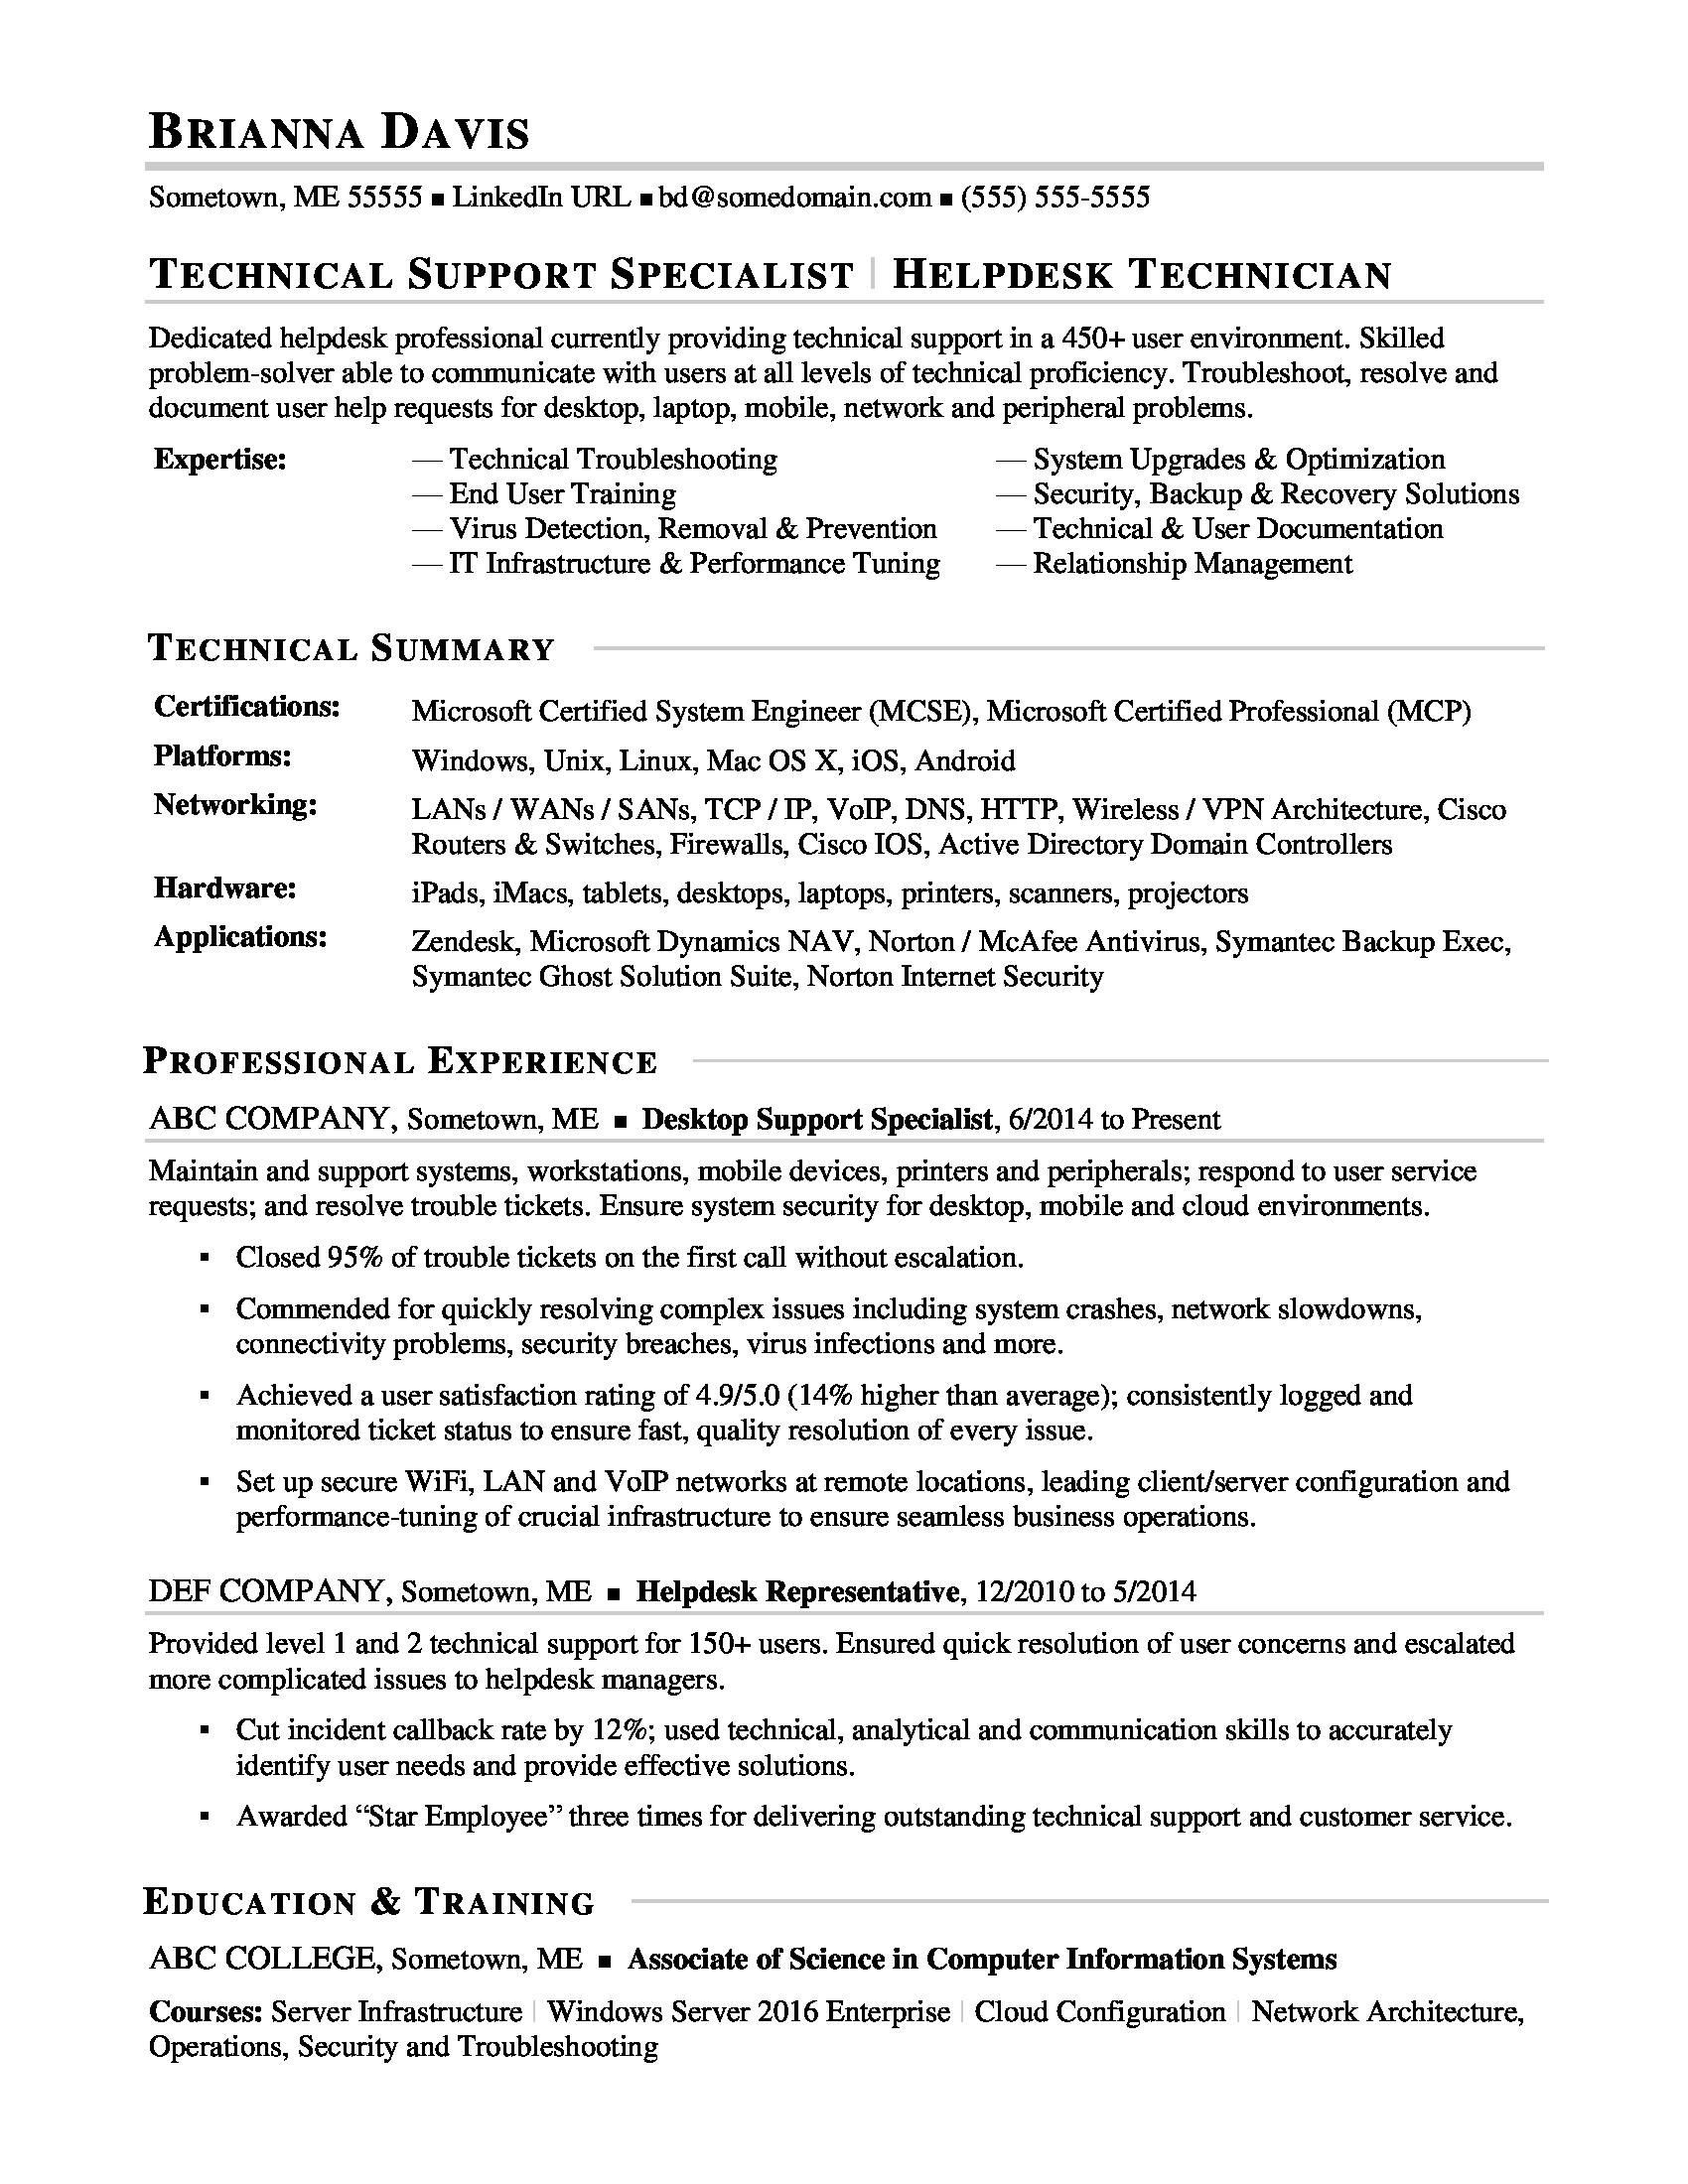 sample resume for experienced it help desk employee monster technical support specialist Resume Technical Support Specialist Resume